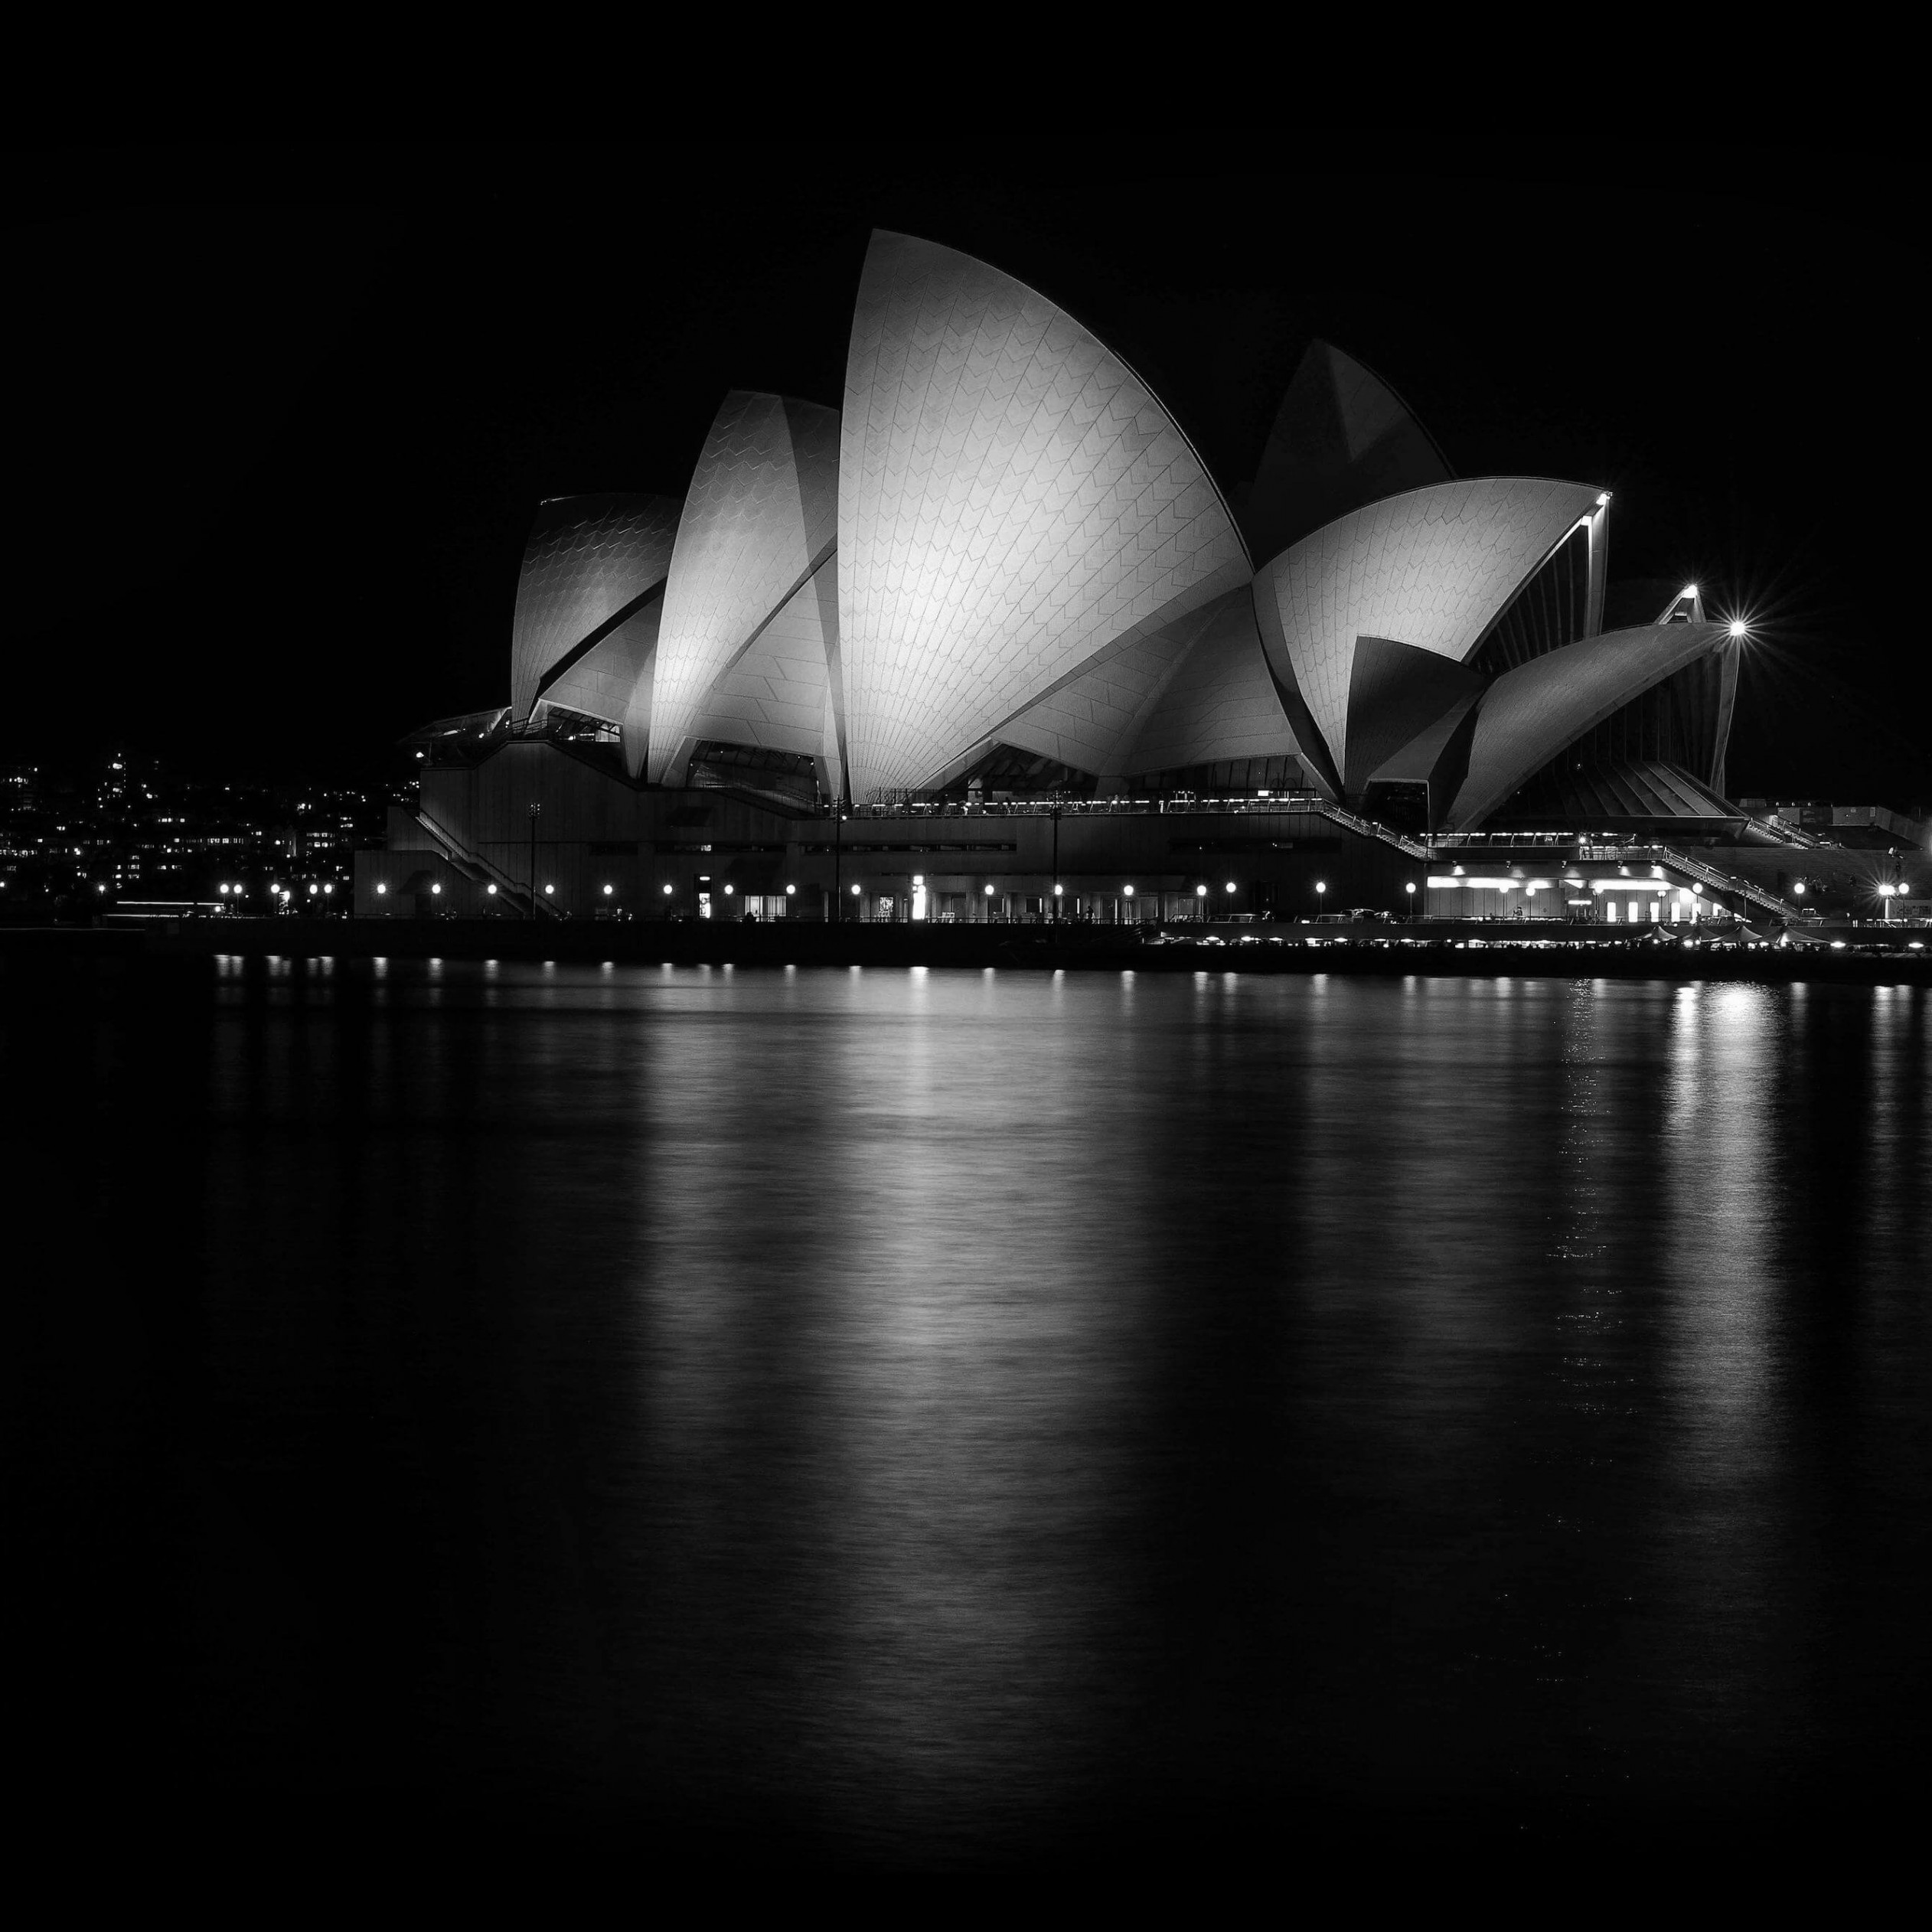 Sydney Opera House at Night in Black & White Wallpaper for Apple iPad mini 2